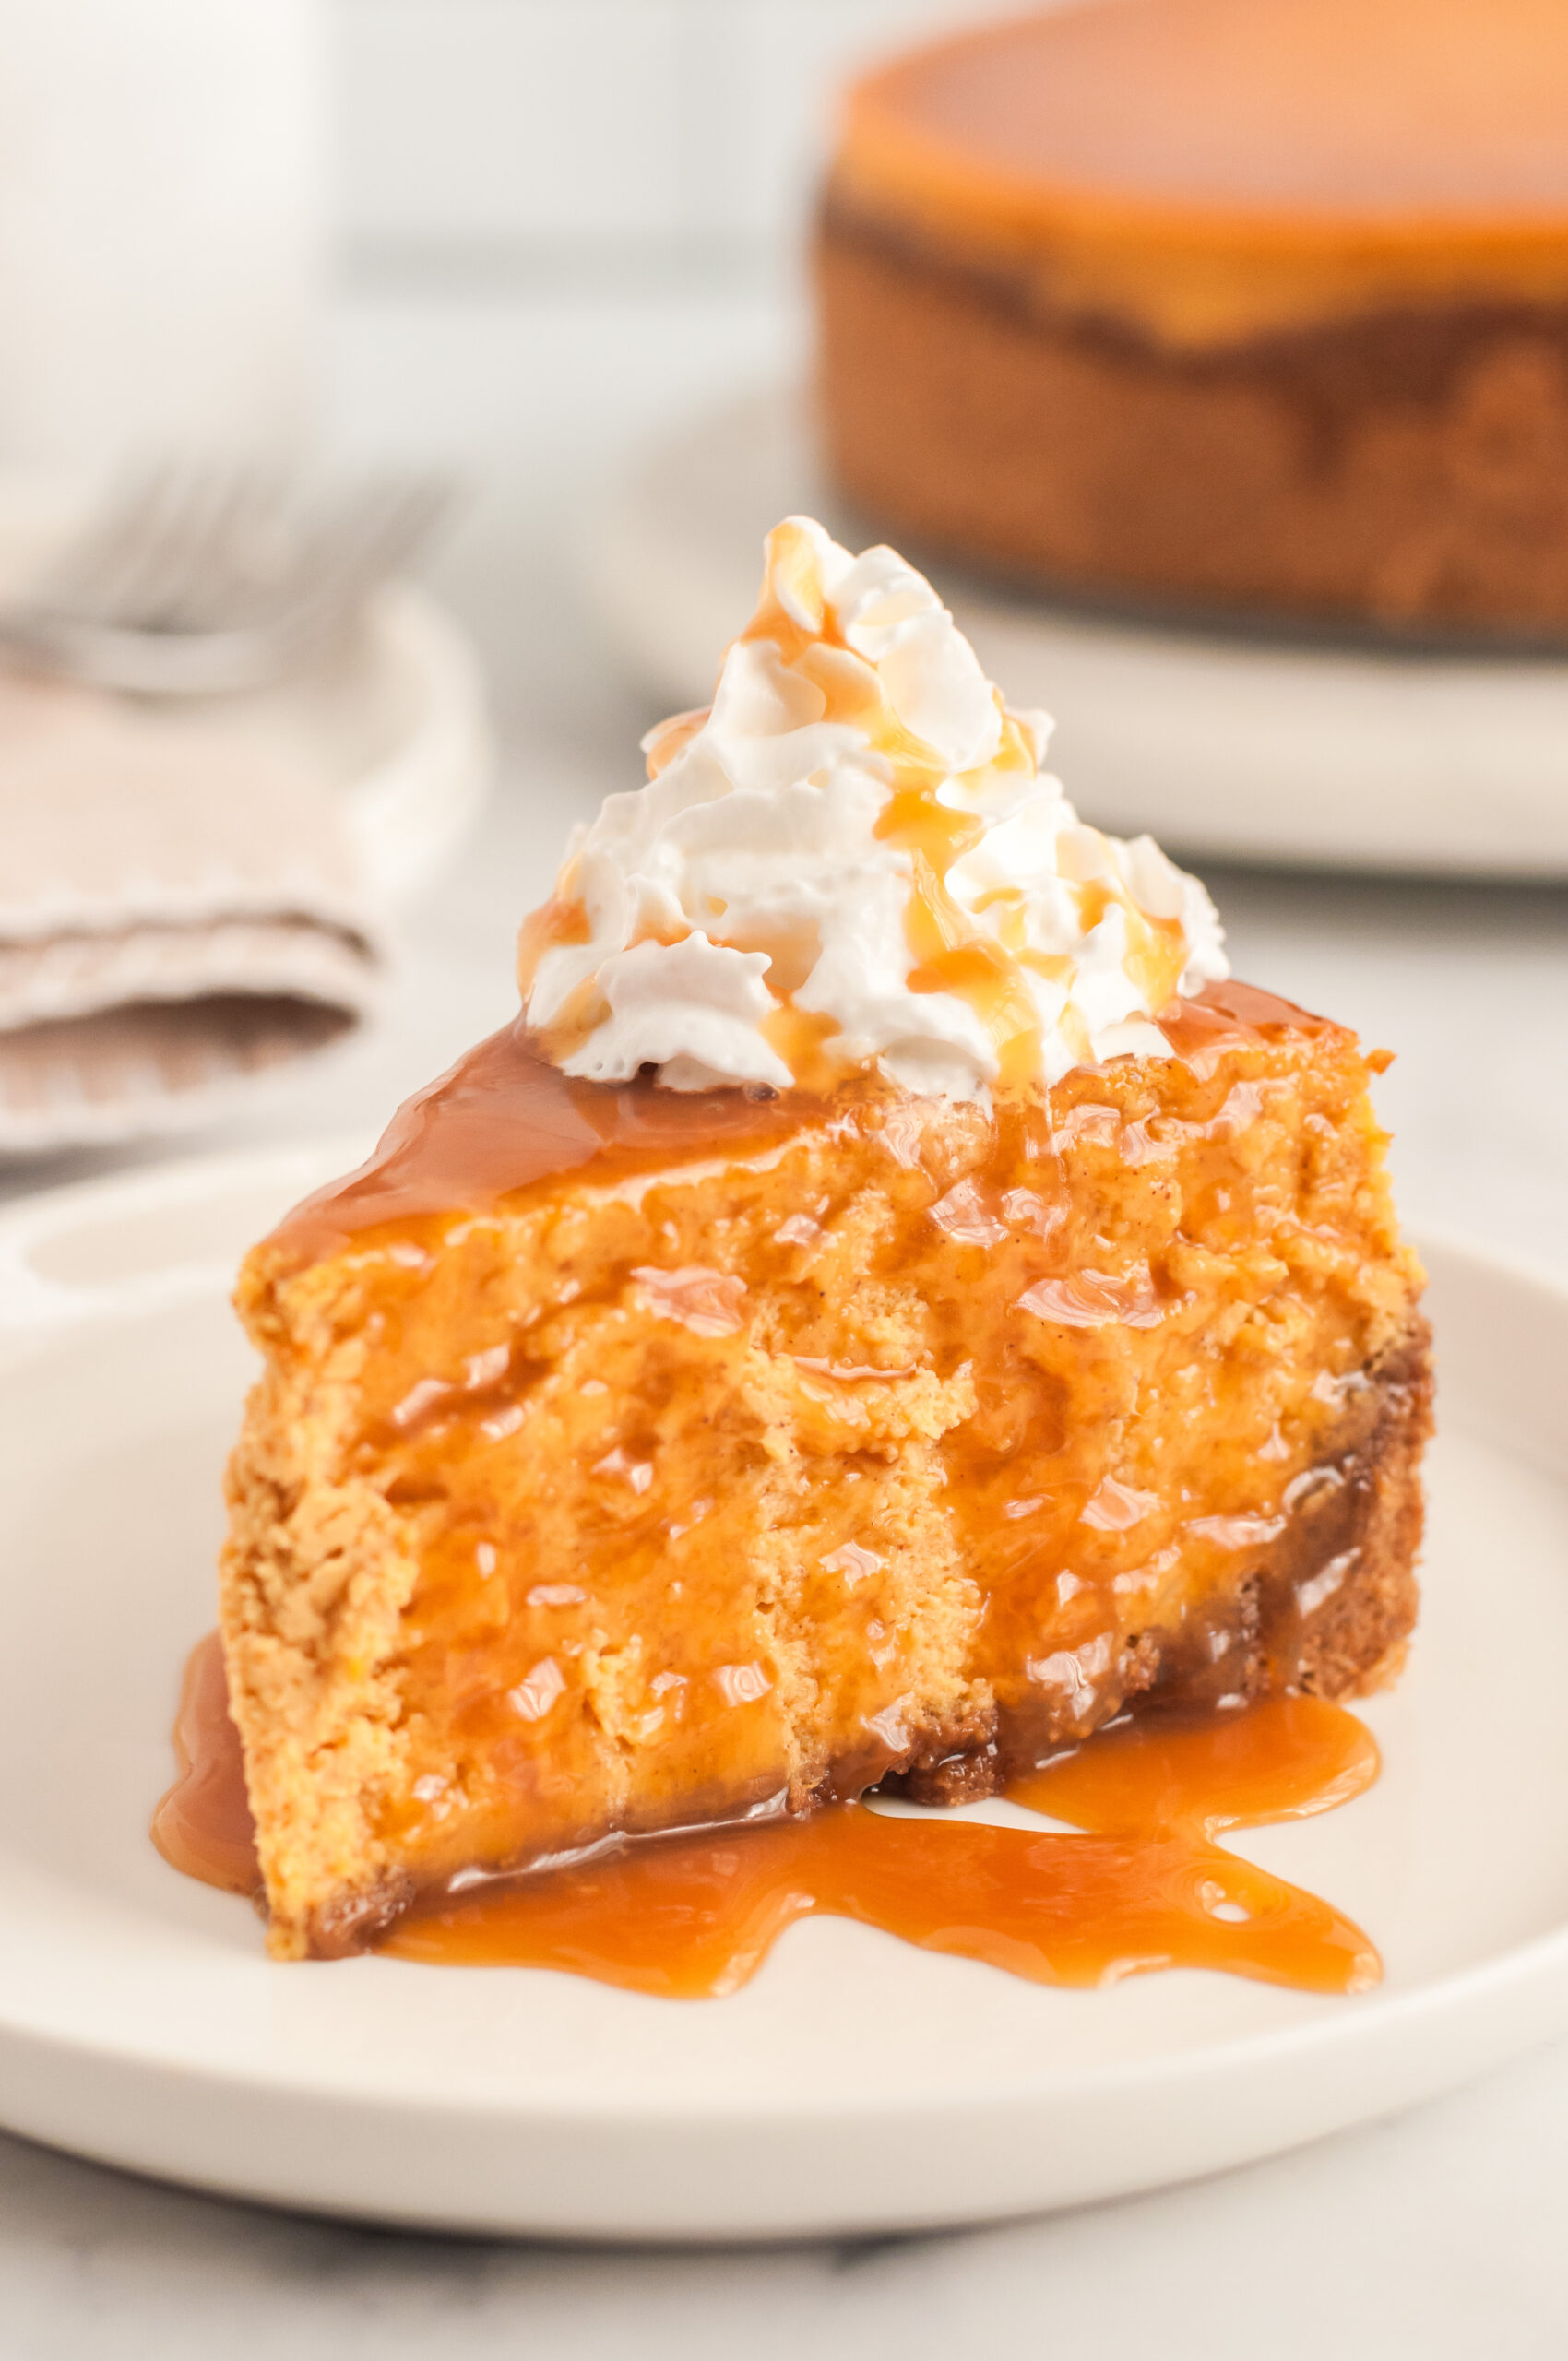 perfect slice of cheesecake on a plate topped with caramel and whipped cream